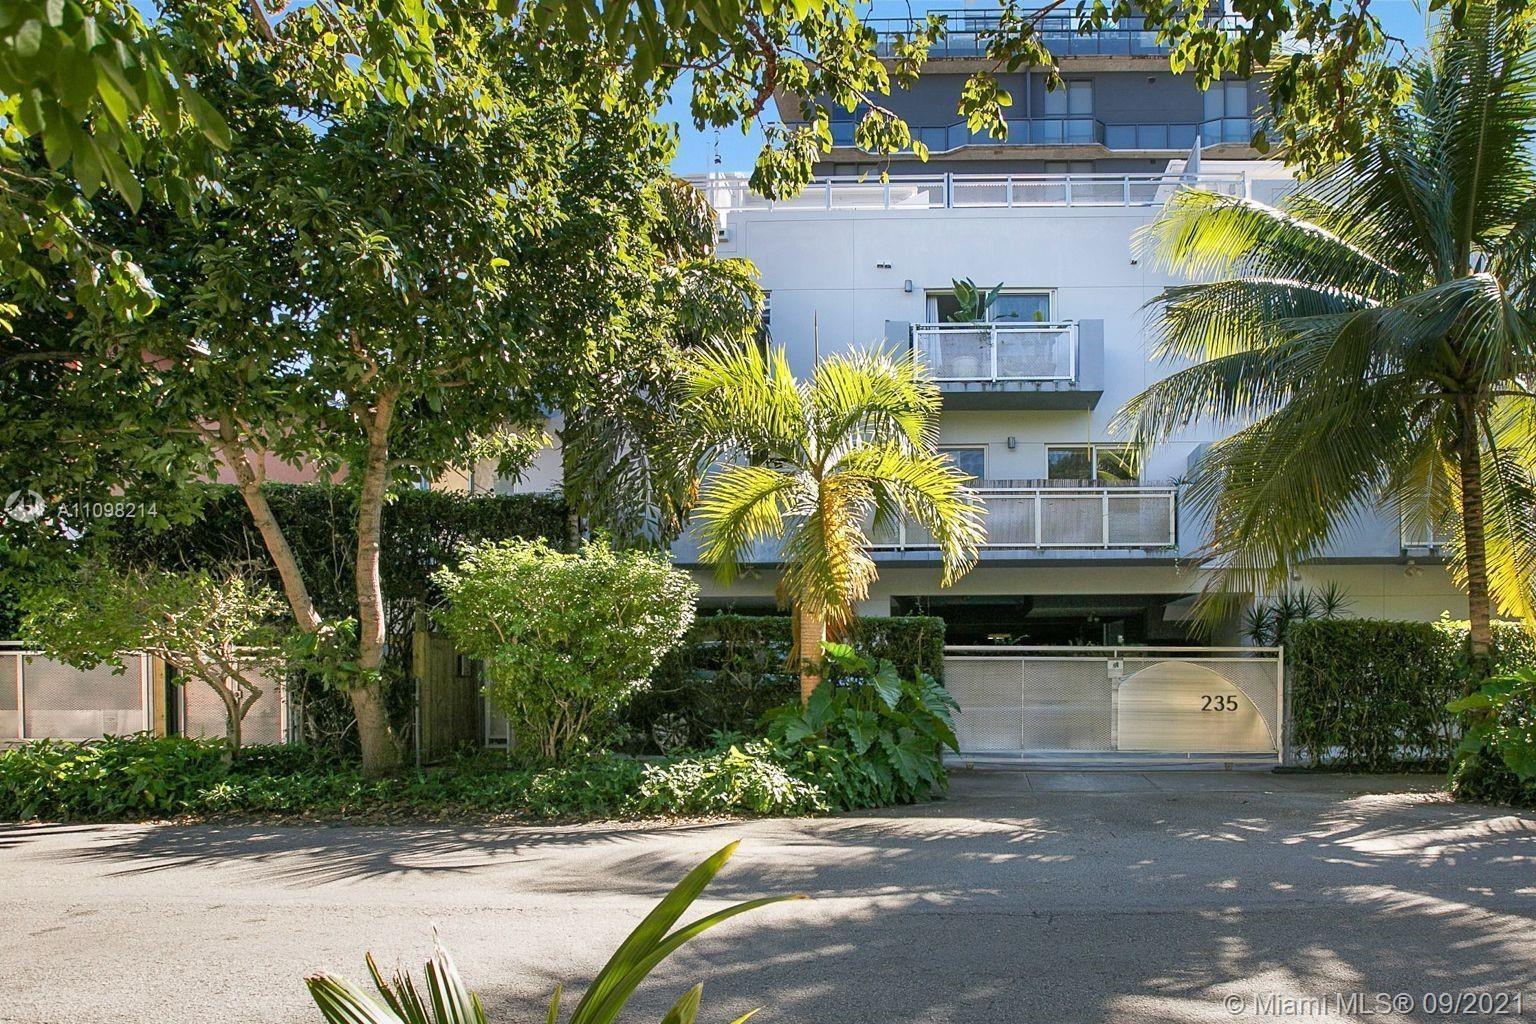 Gorgeous & gated tri-level townhouse with a rooftop terrace, beautiful skyline & tree canopy views.